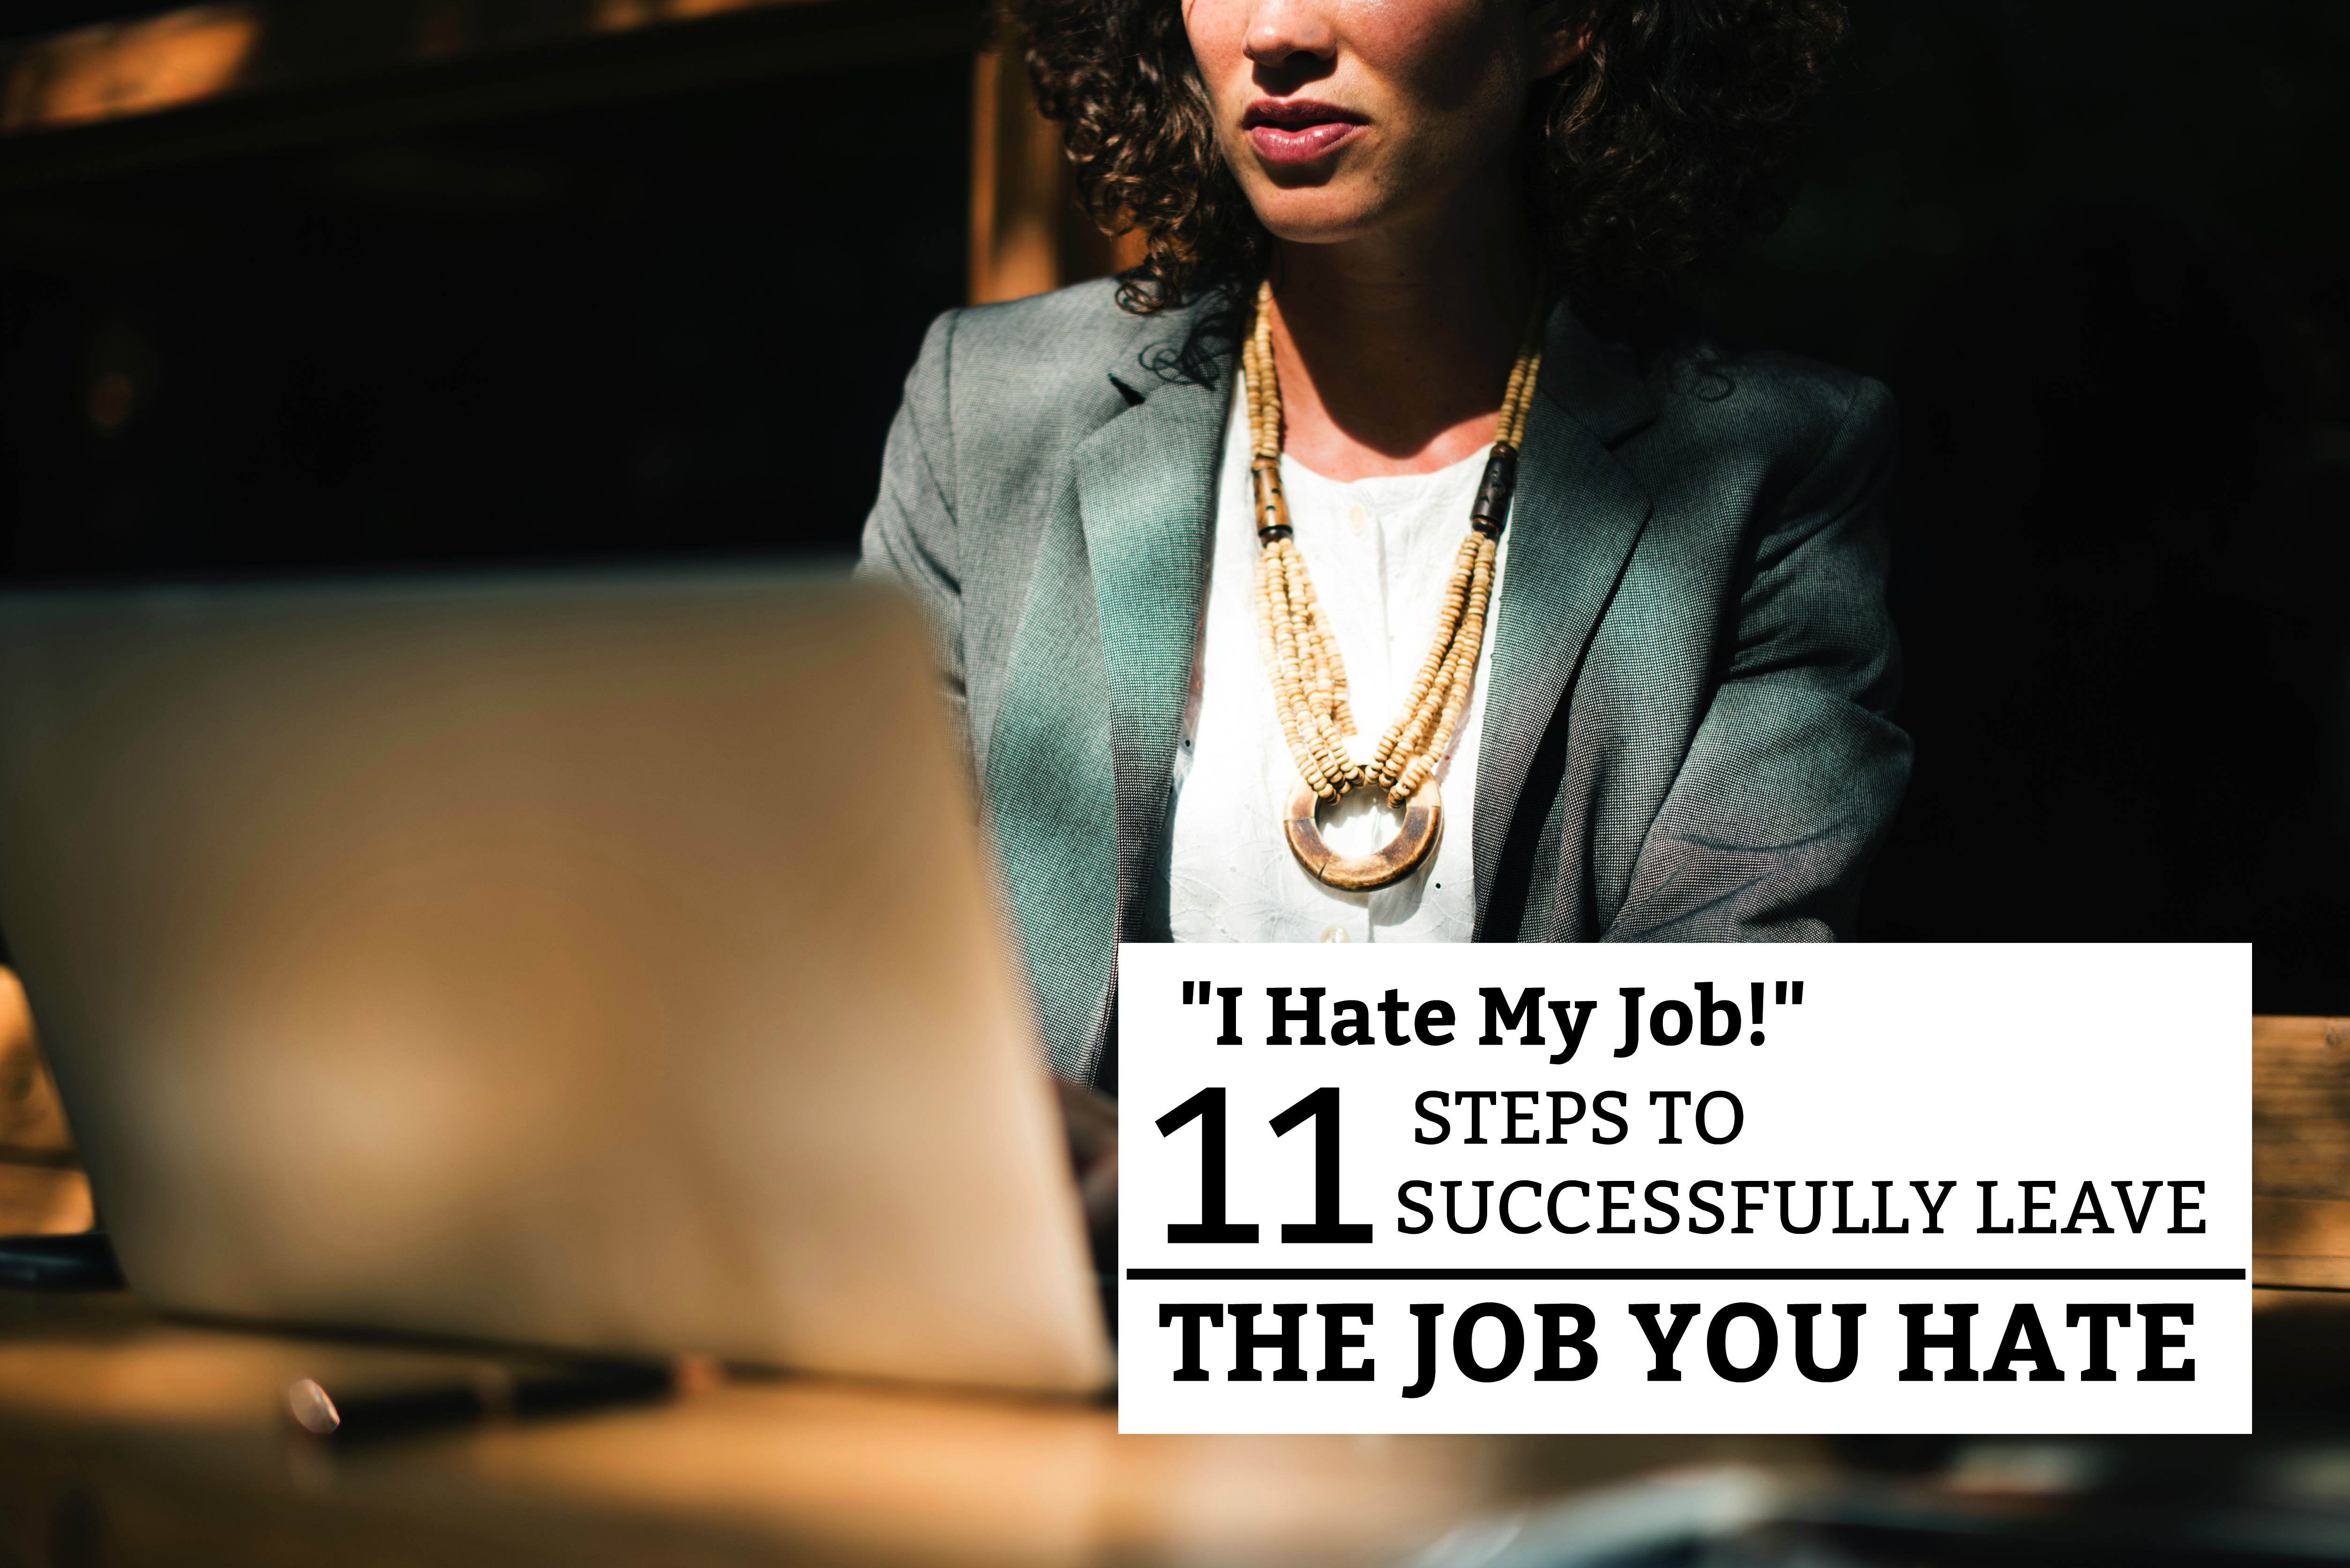 """I Hate My Job!"" 11 Steps to Successfully Leave the Job You Hate - a step-by-step guide on how to research, replace, and resign the job you hate. www.tradingaverage.com"